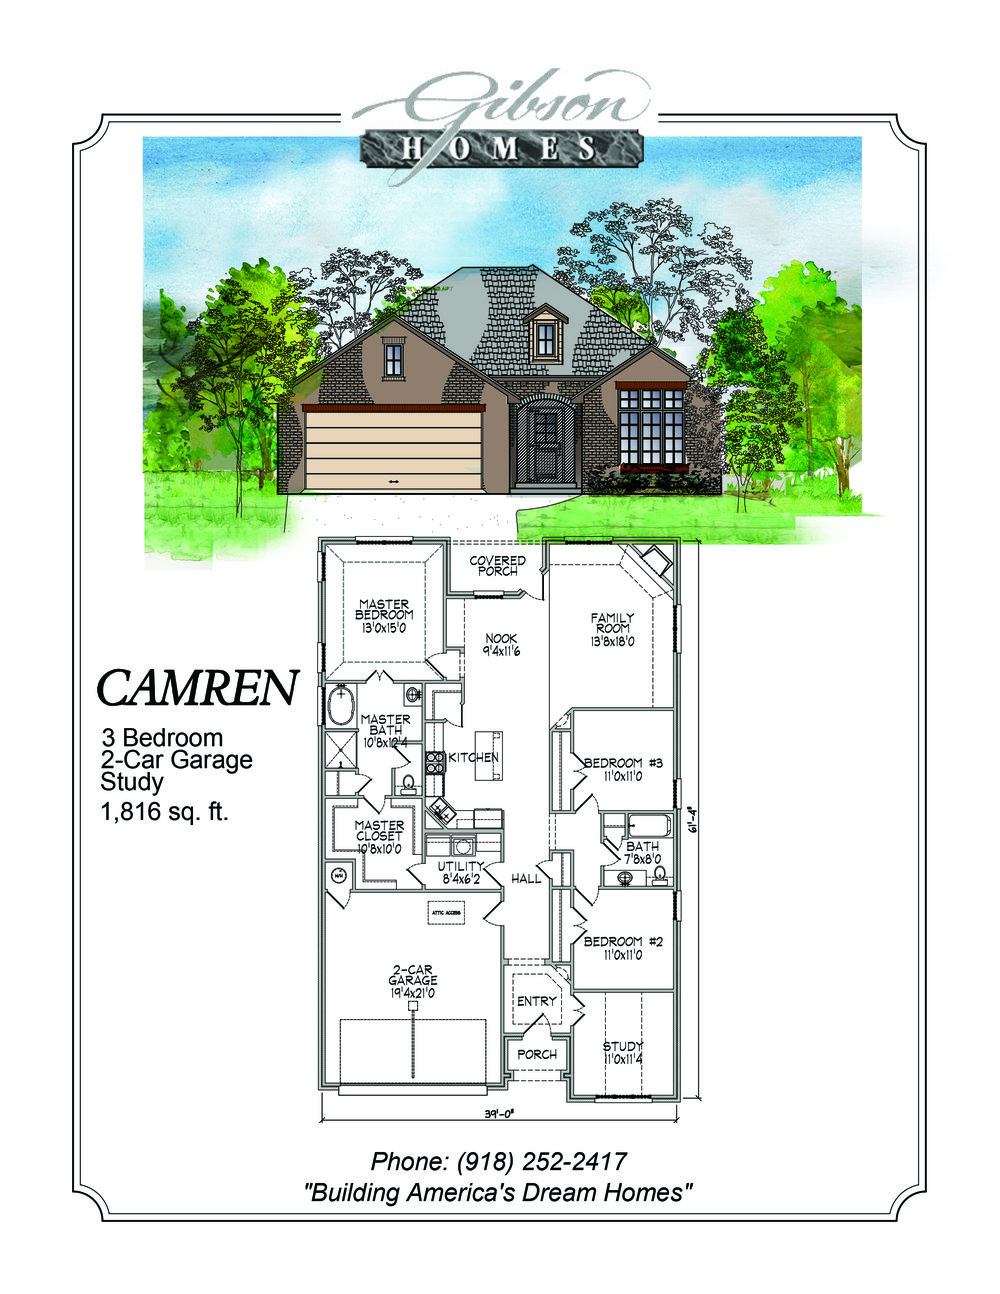 CAMREN - 1922 Sq. Feet3 bedrooms2 bathroomsStudy2 car garageBase Price $185,000